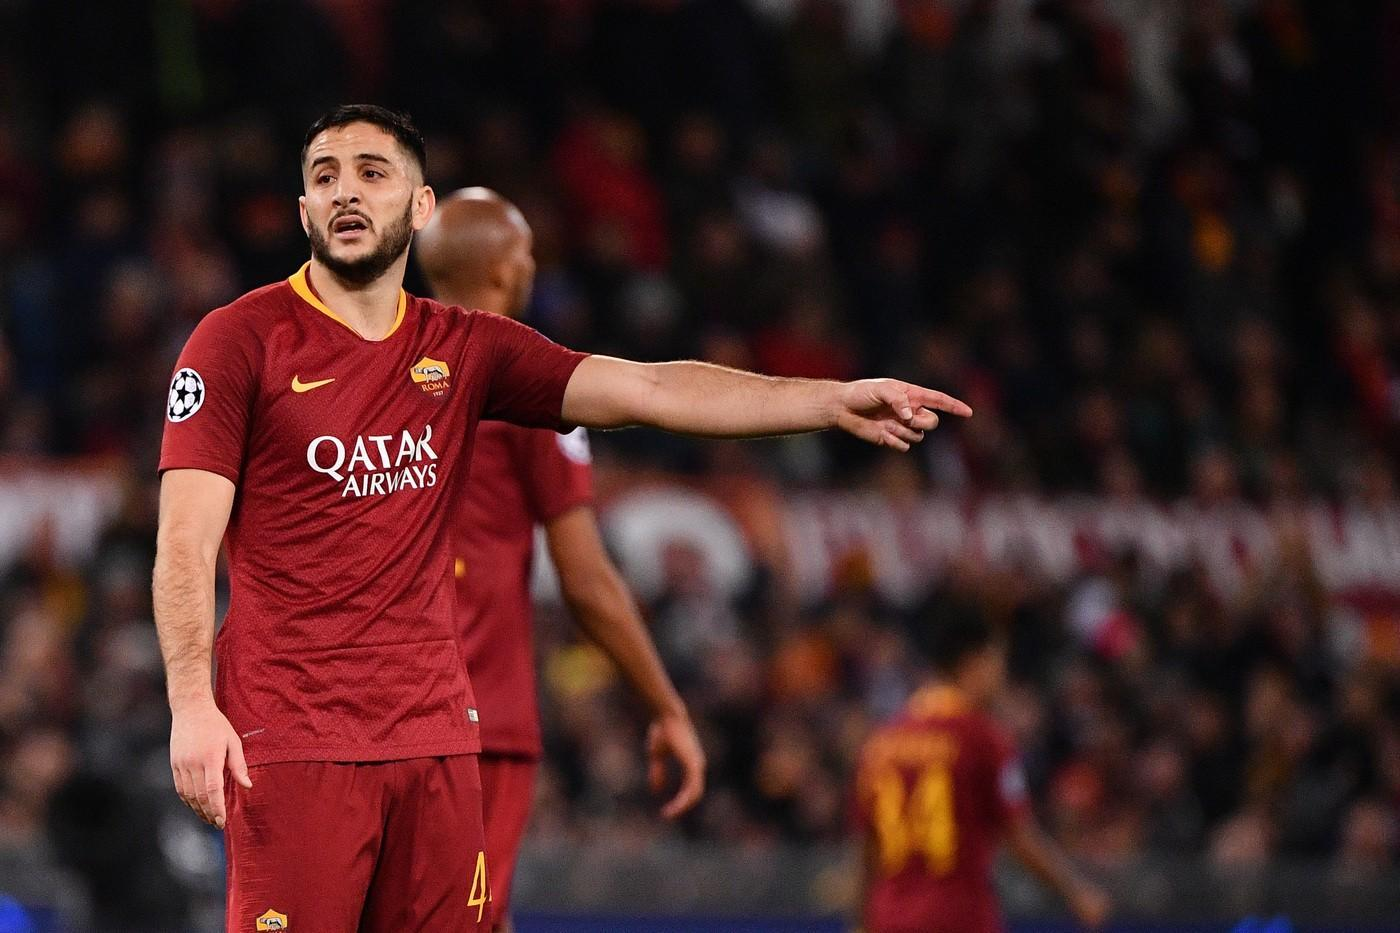 Cagliari-Roma, Manolas out per infortunio: le possibili alternative©LaPresse